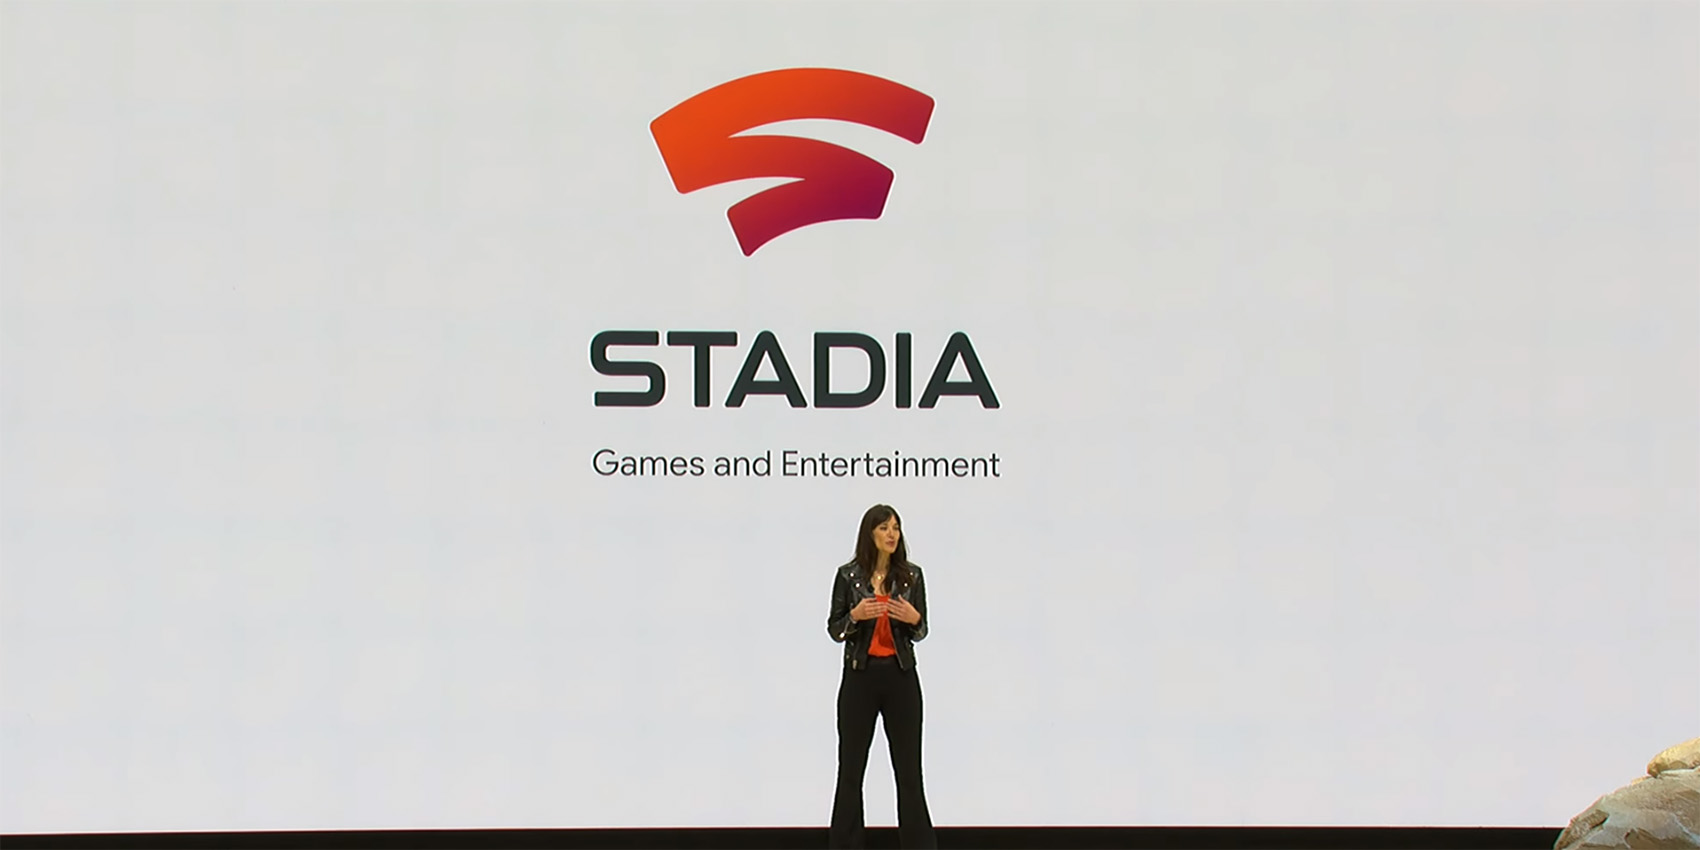 Stadia games entertainment